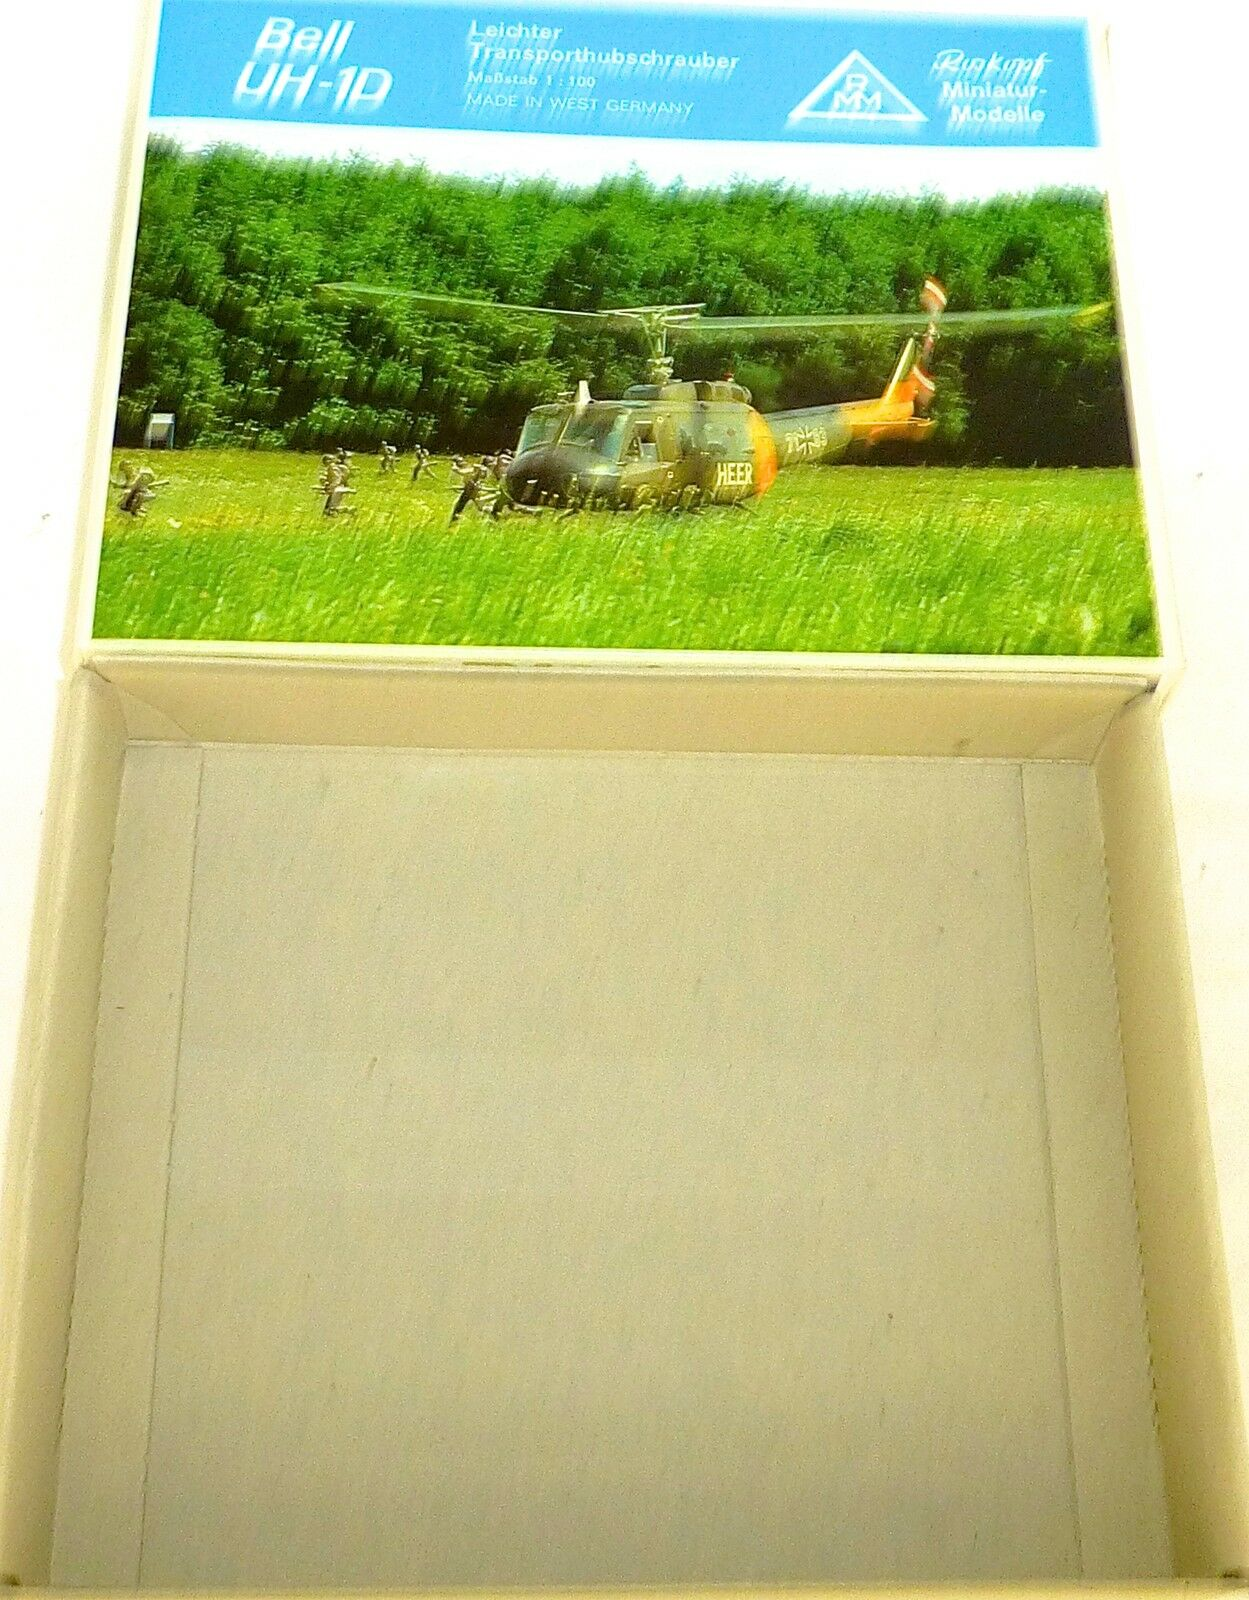 Bell UH-1D Helicopter Roskopf 41 only the Empty Carton Empty Box HQ4 Å